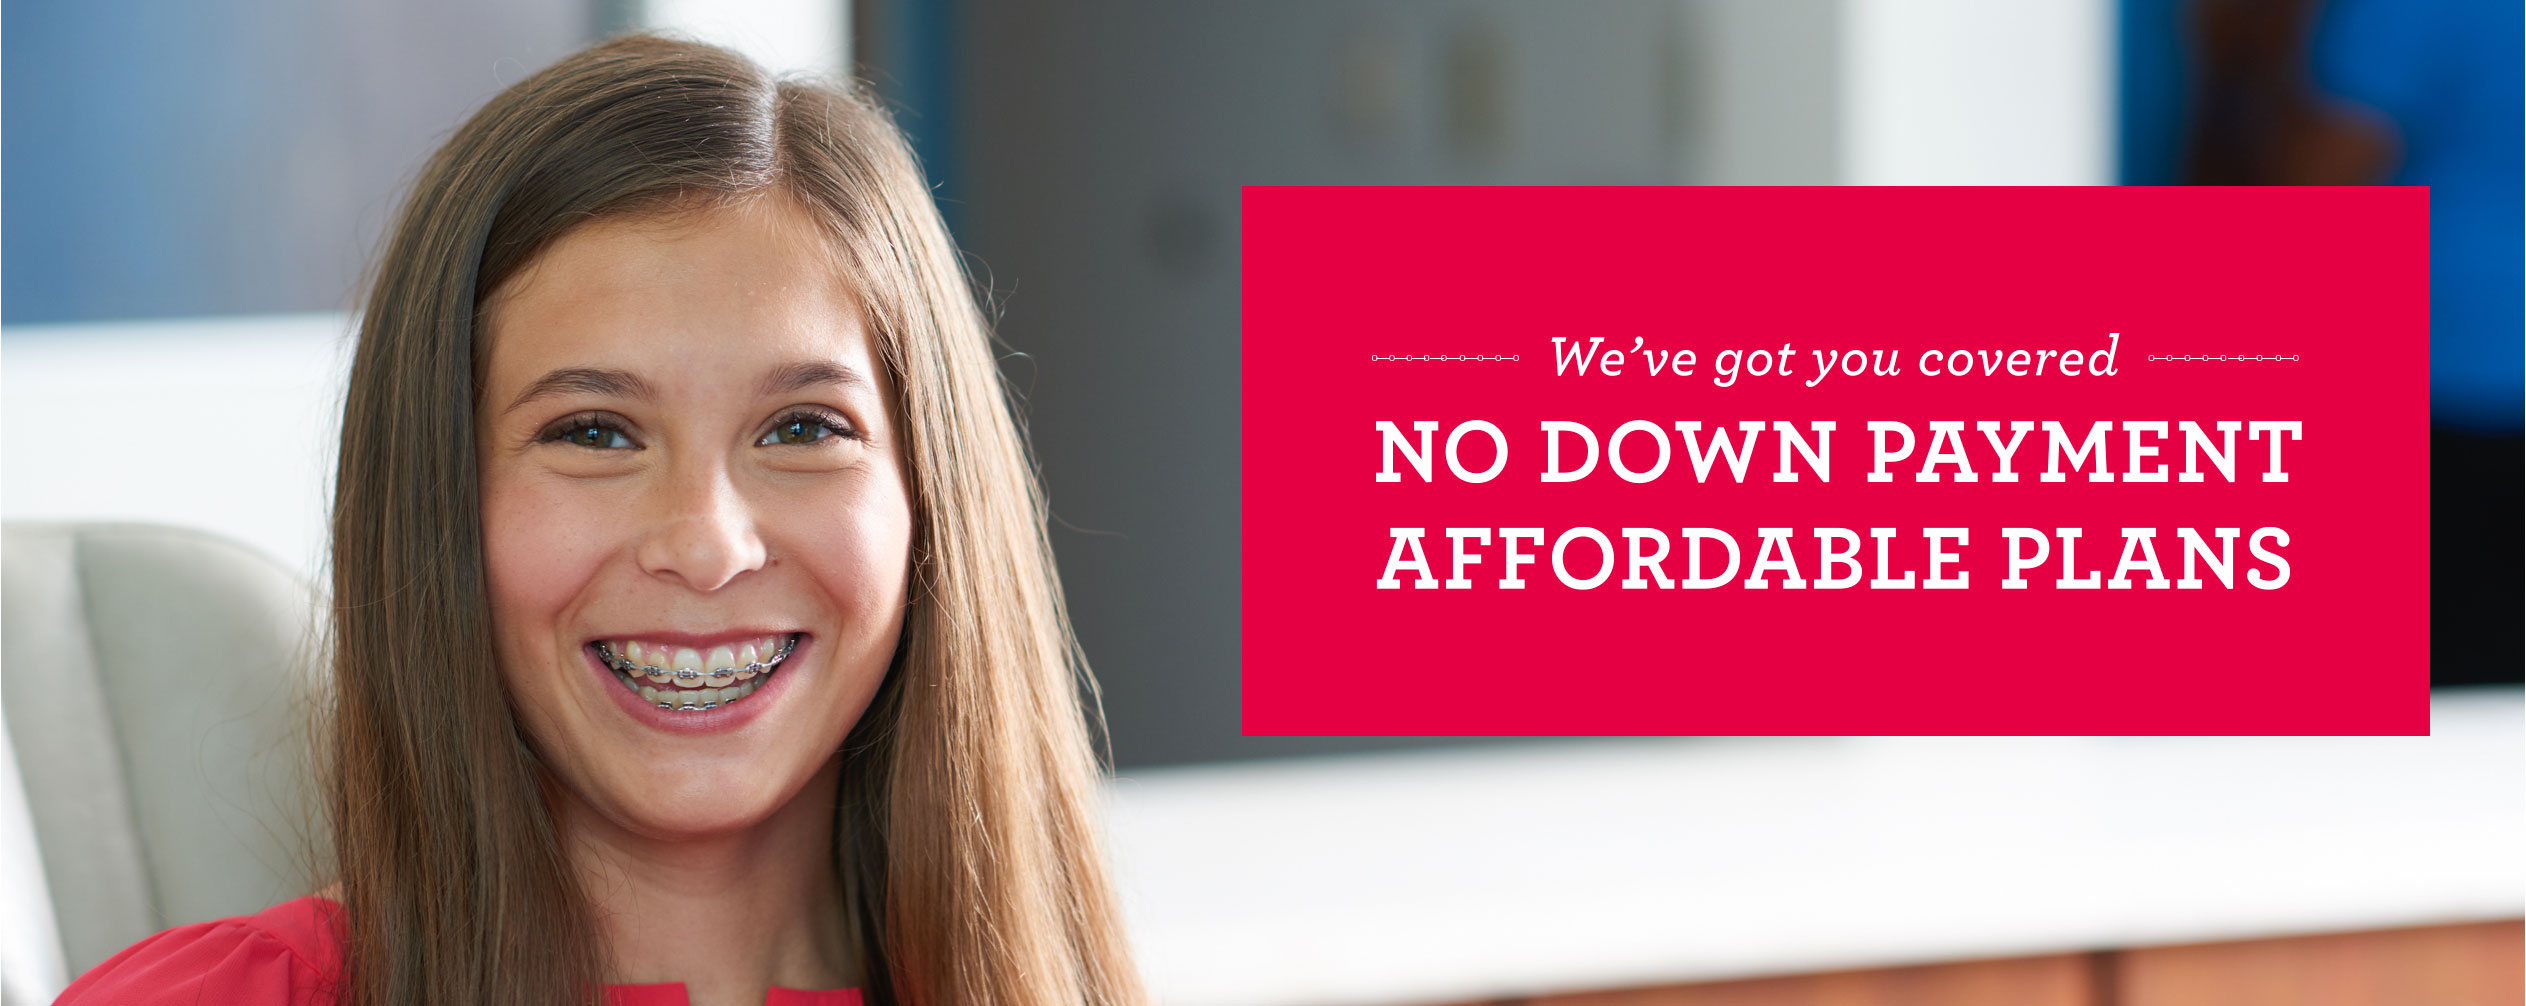 birmingham orthodontics affordable payment plans